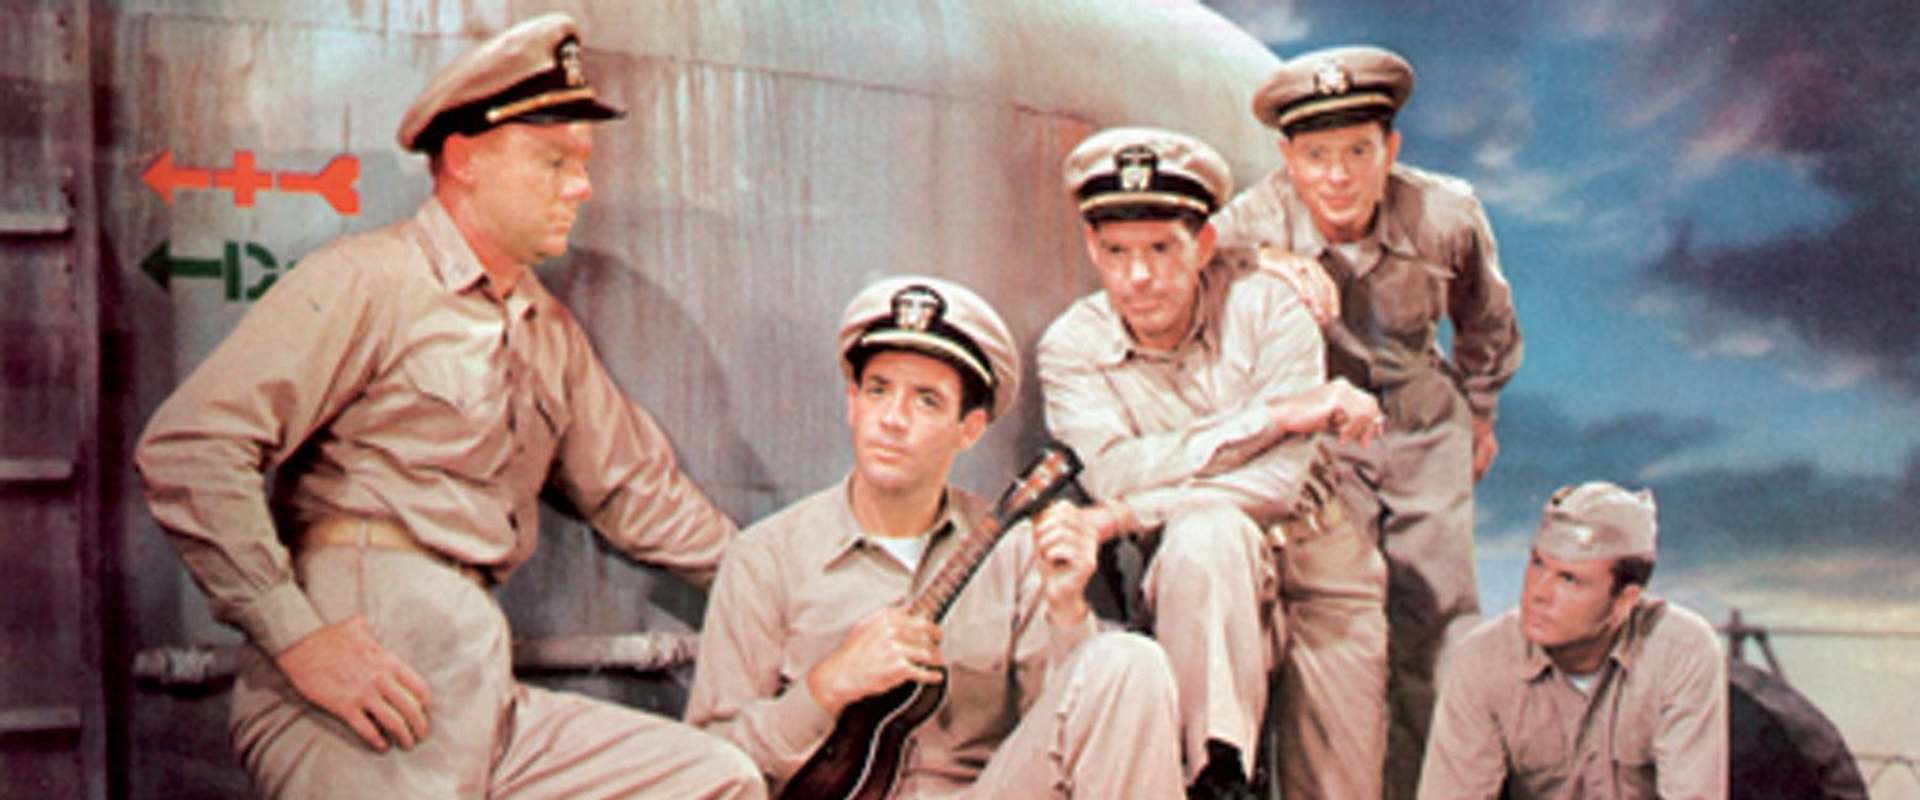 The Caine Mutiny background 2